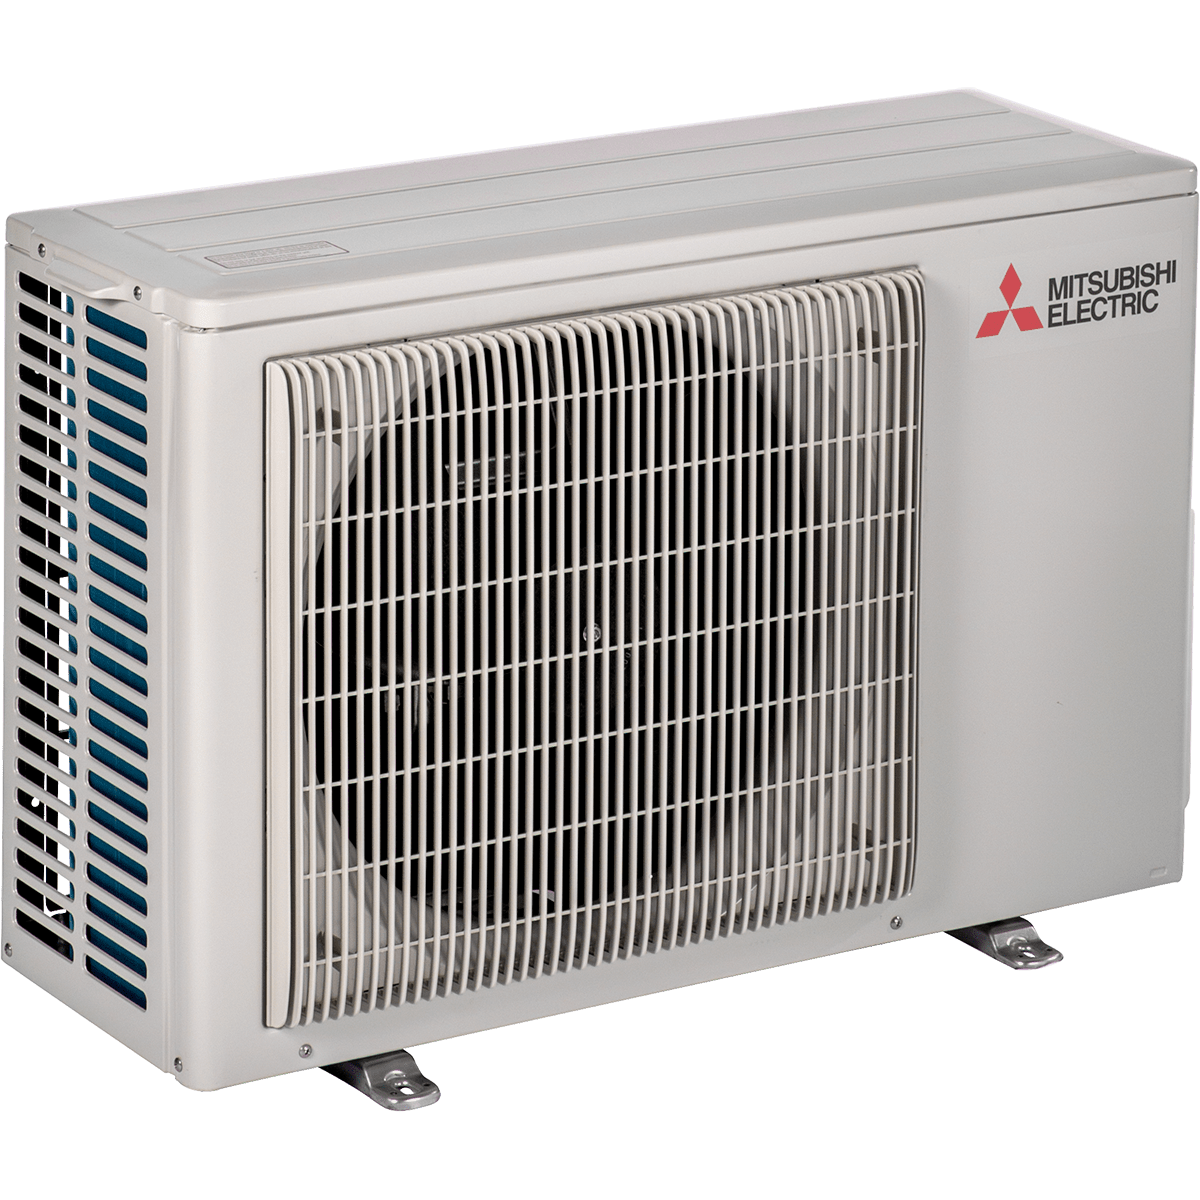 Mitsubishi 12,000 BTU Mini Split Air Conditioner with Heat - outdoor